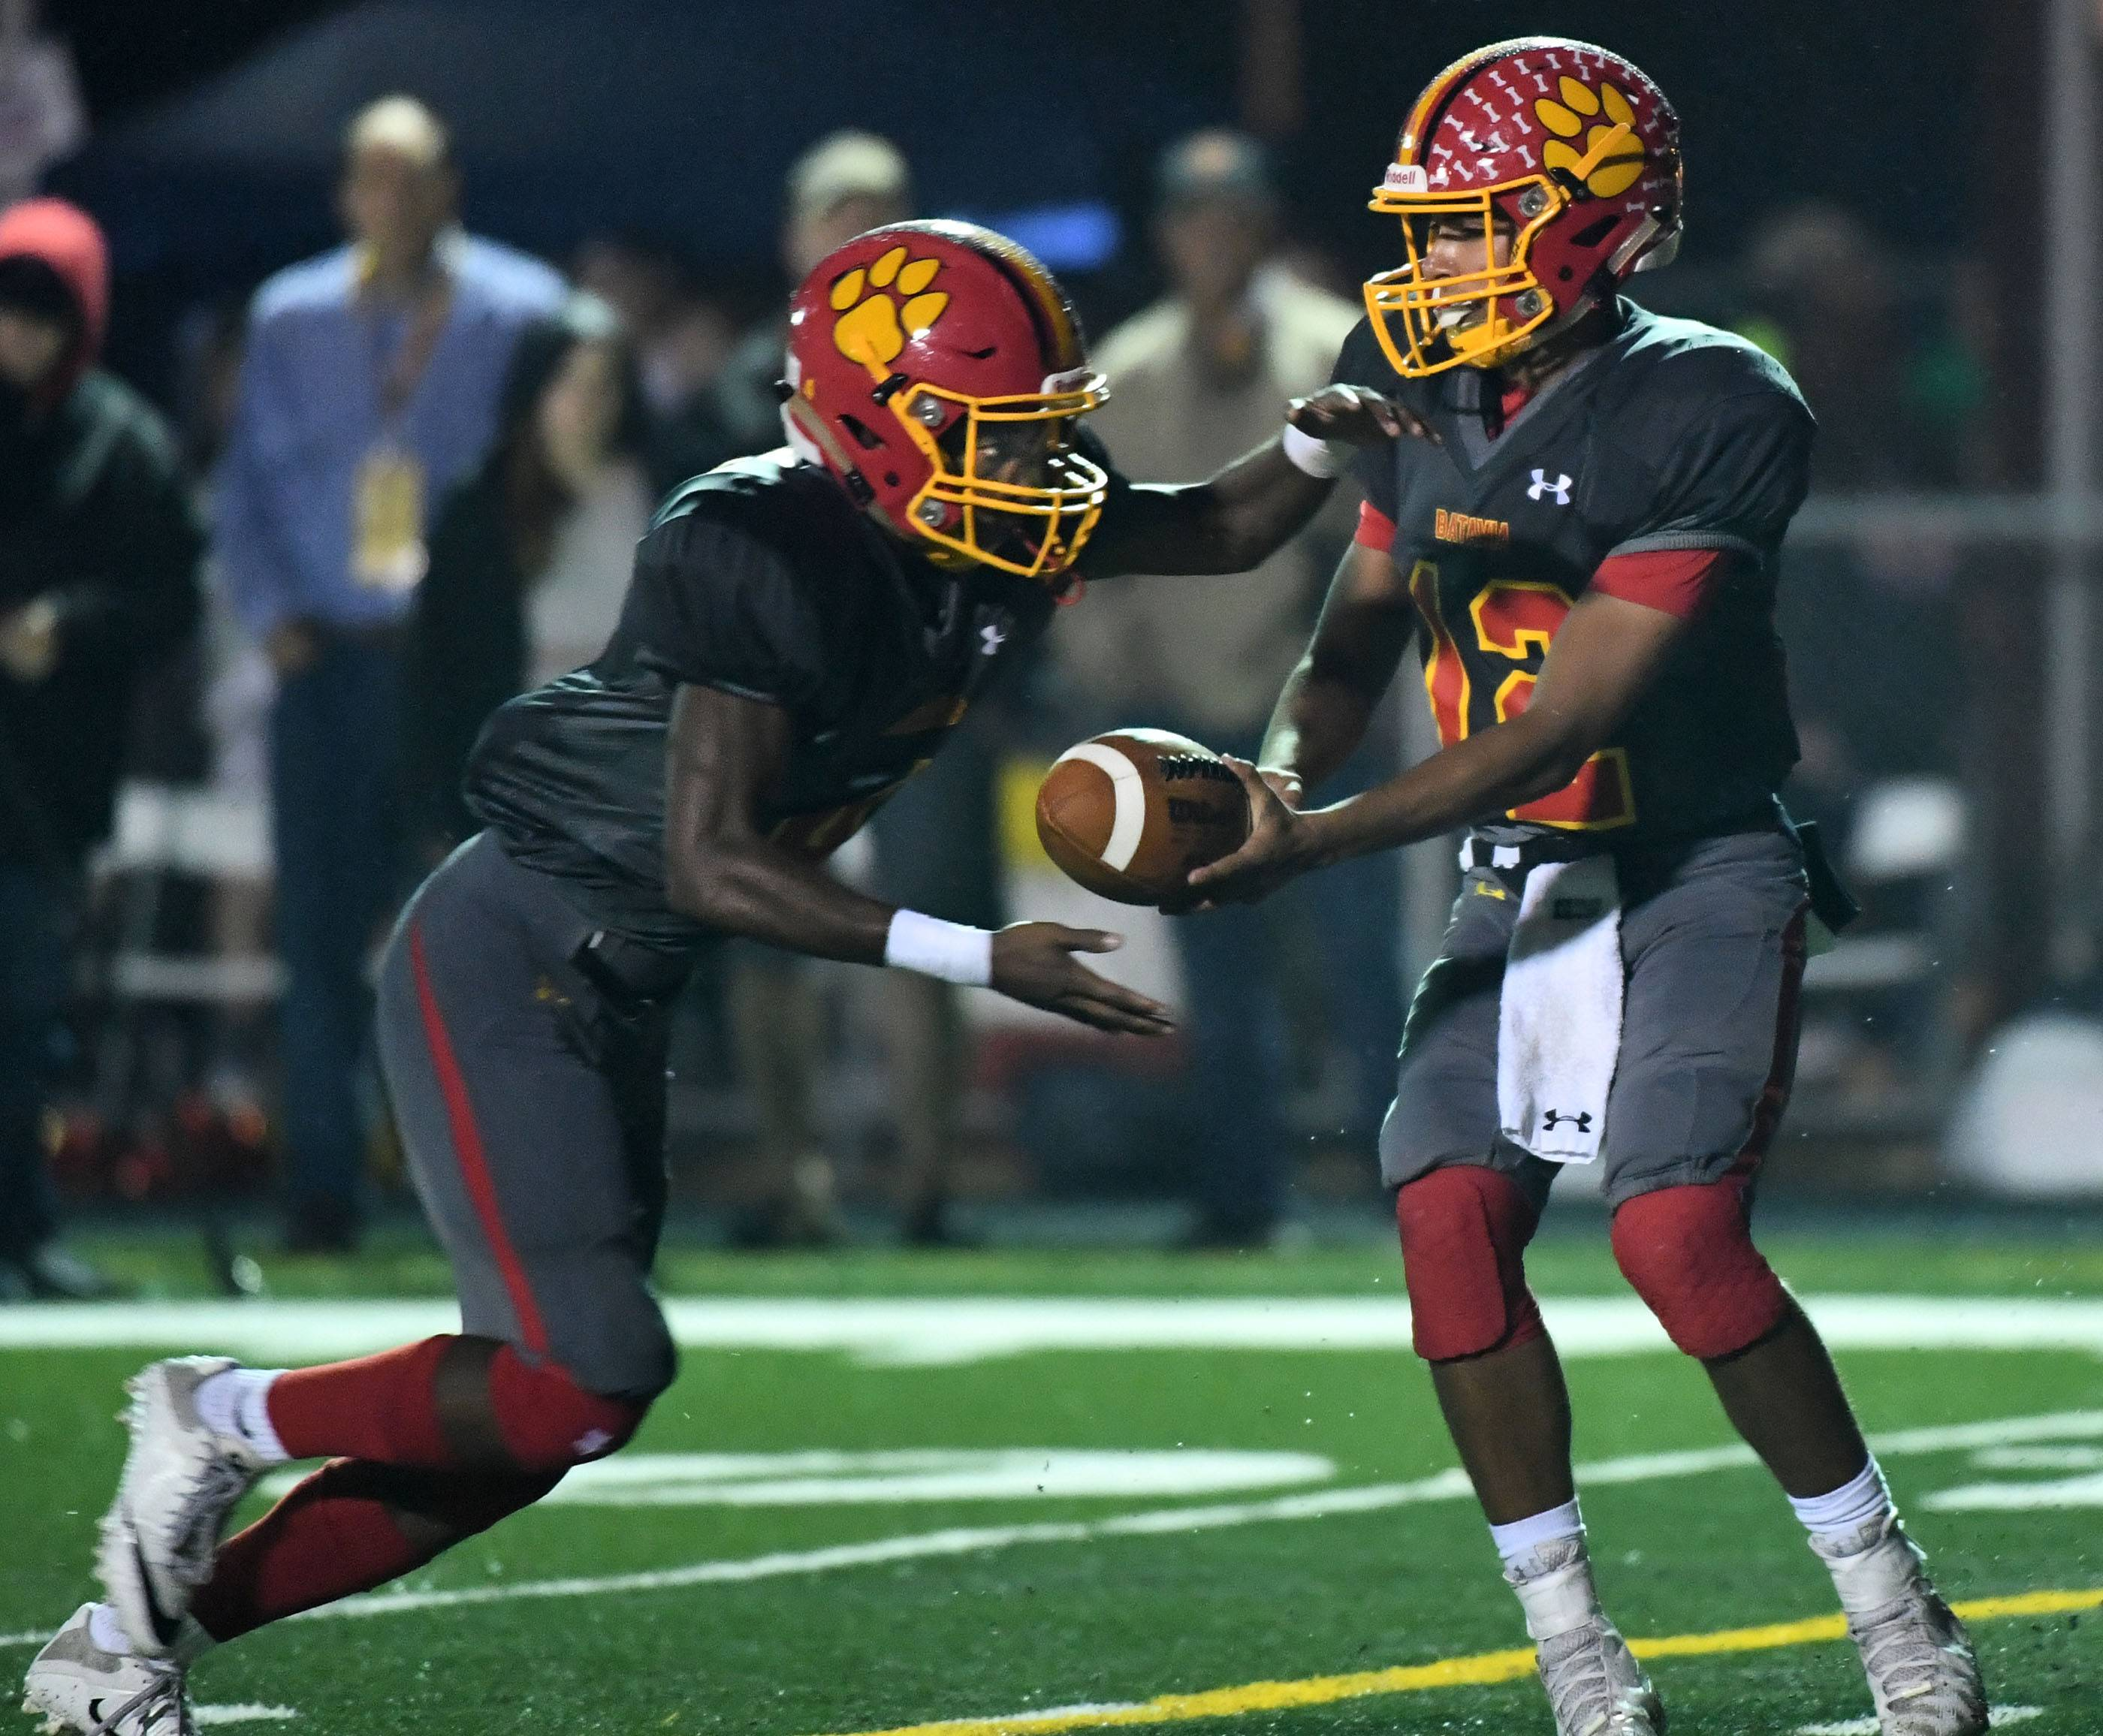 Batavia's Riley Cooper hands off to Reggie Phillips, who takes it to the one yard line against South Elgin earlier this season. Batavia plays at Lincoln-Way West in a Class 6A quarterfinal Saturday.